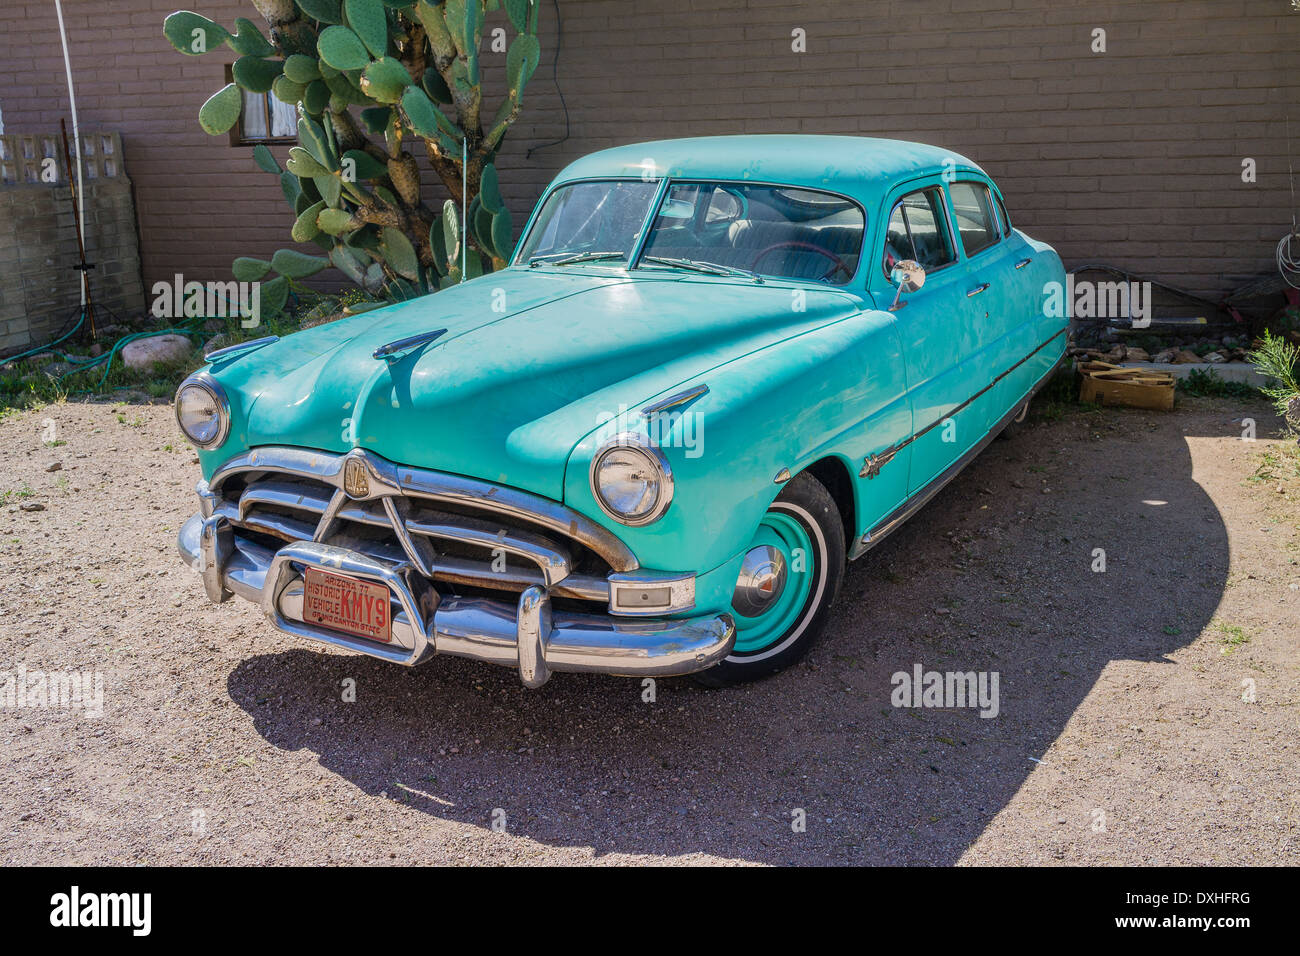 first generation 1951 1954 hudson hornet four door sedan in turquoise color with